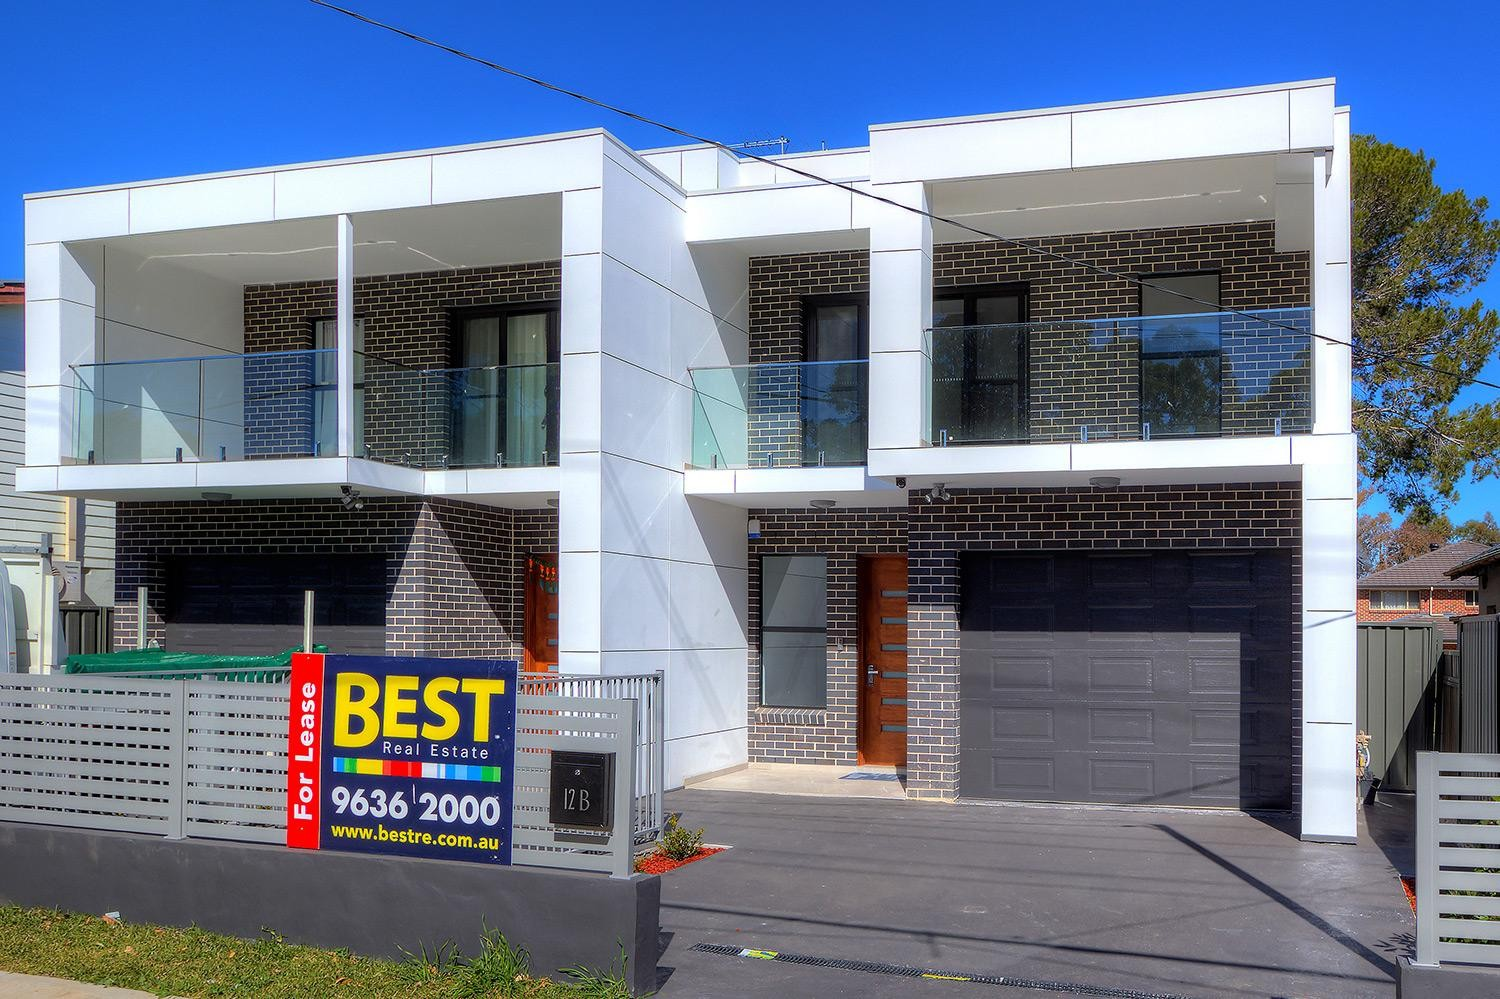 Brand New 4 Bedroom Duplex! Torrens Title!